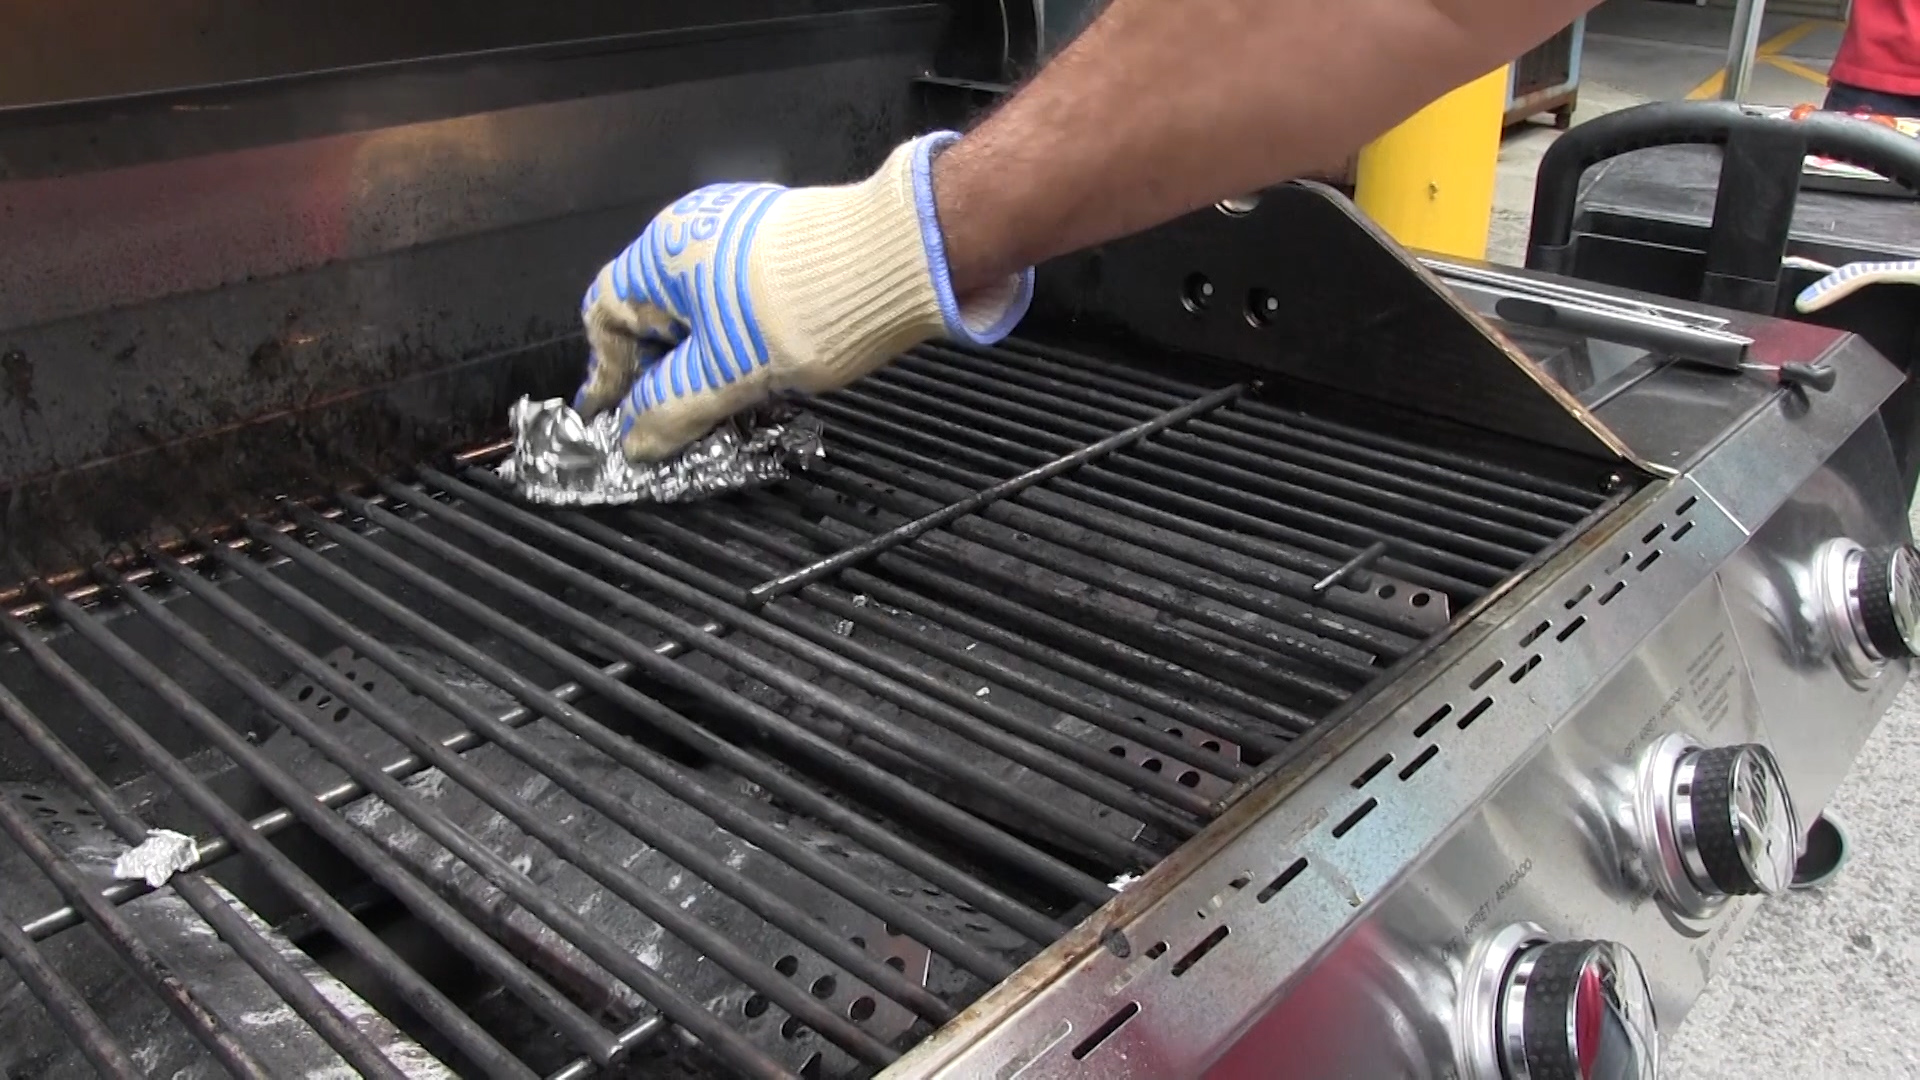 BBQ Grill Cleaning Service | BBQ Gas Grill Cleaning Central Texas